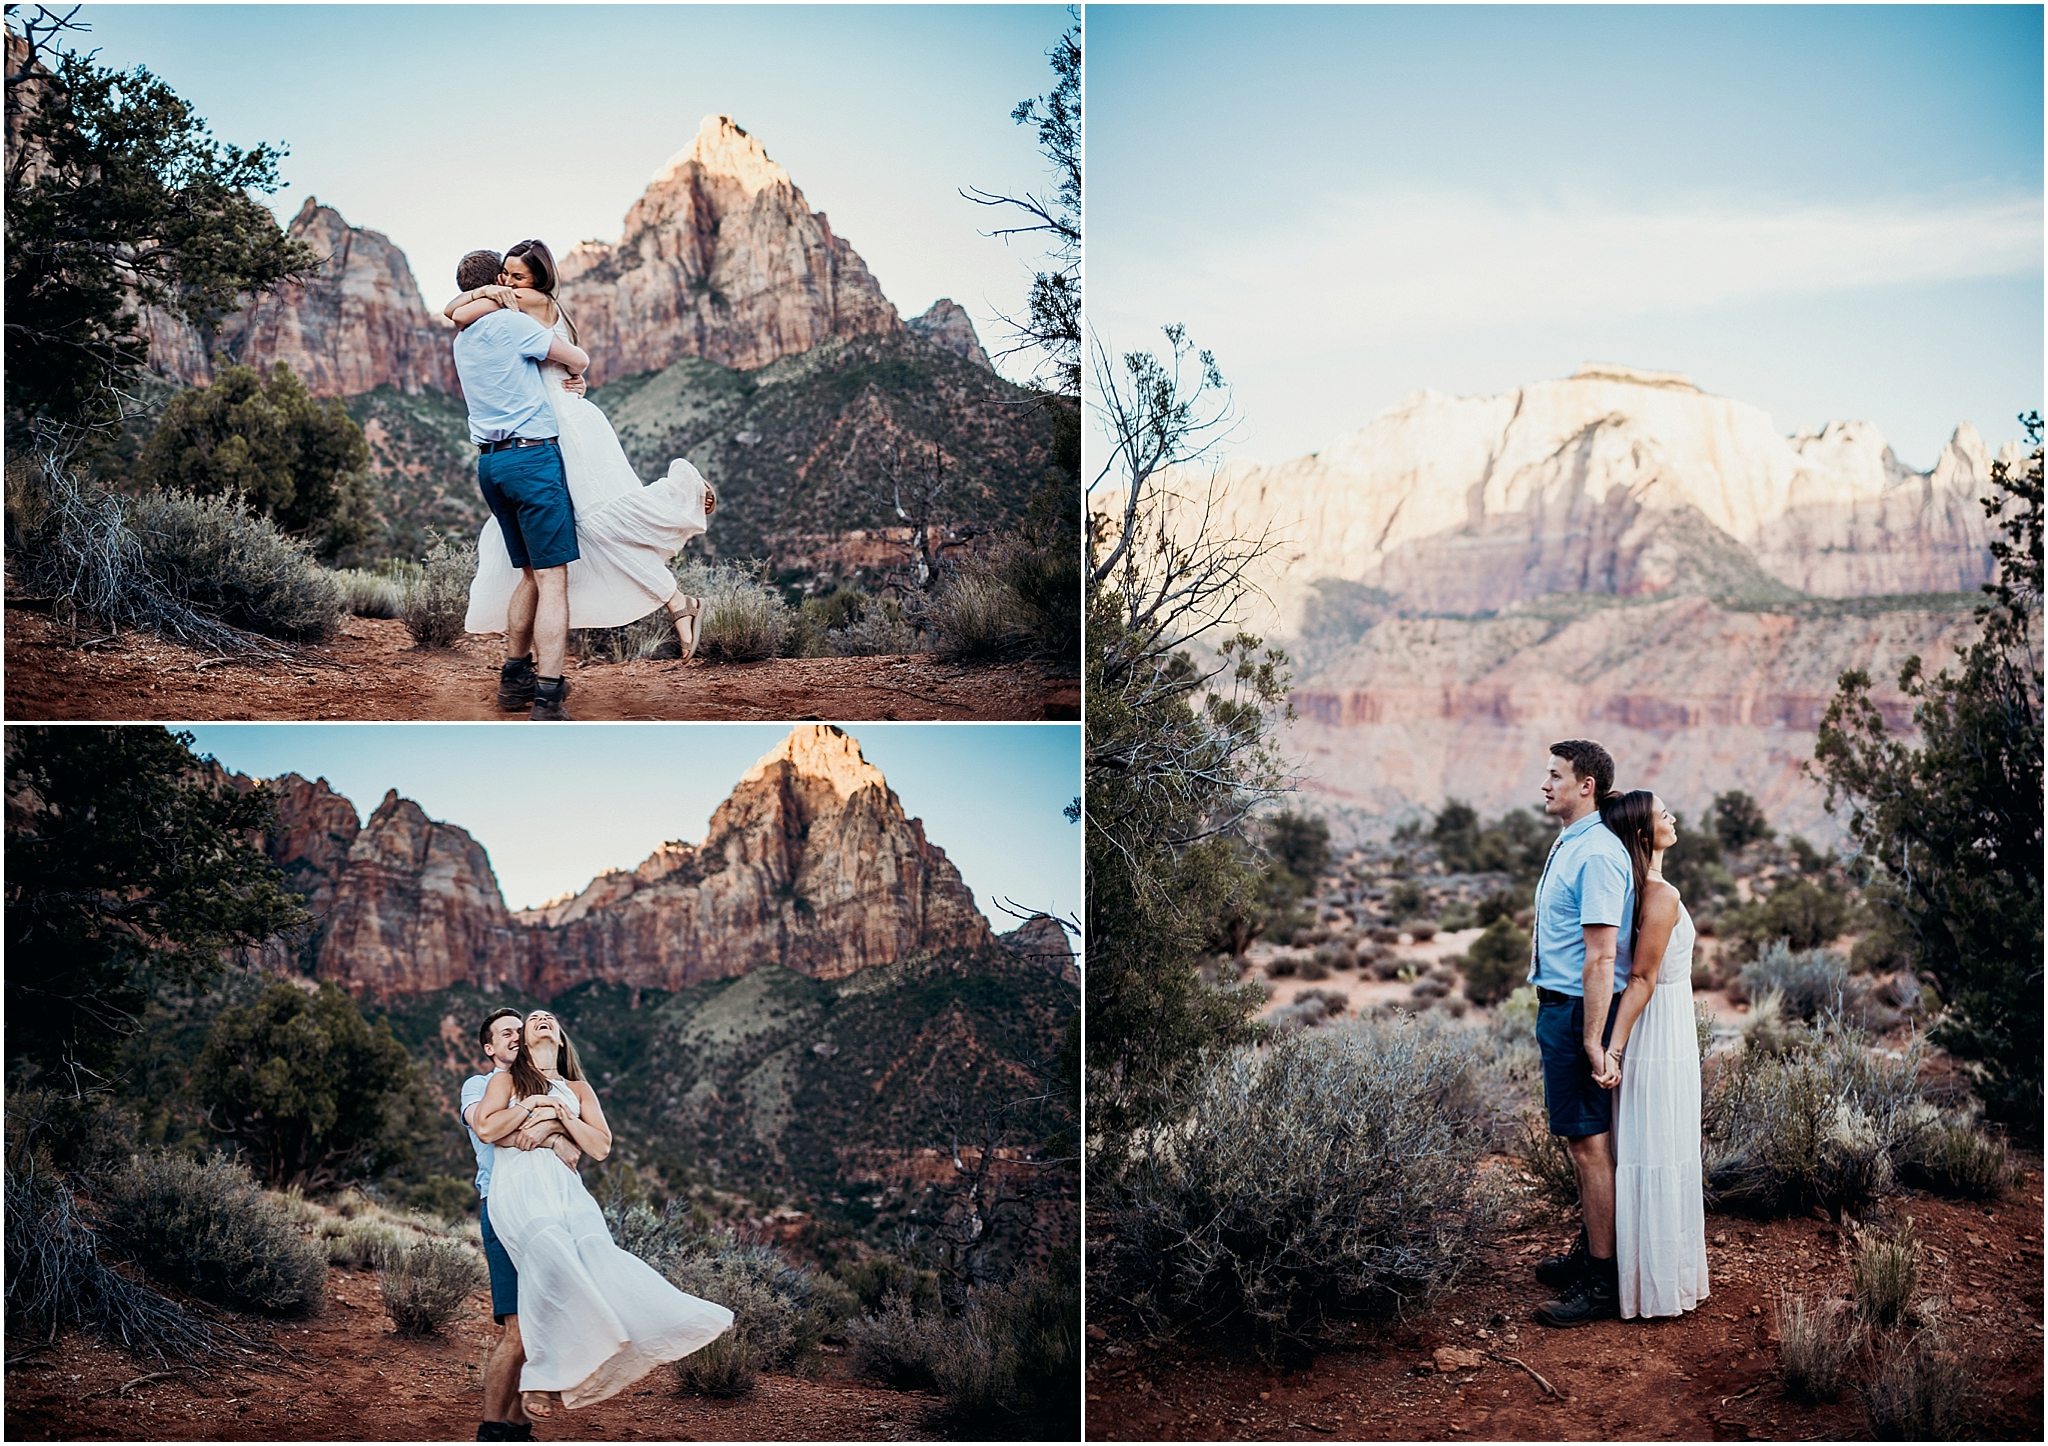 zion national park adventure engagement session zion portraits utah photographer arizona photographer 18.jpg